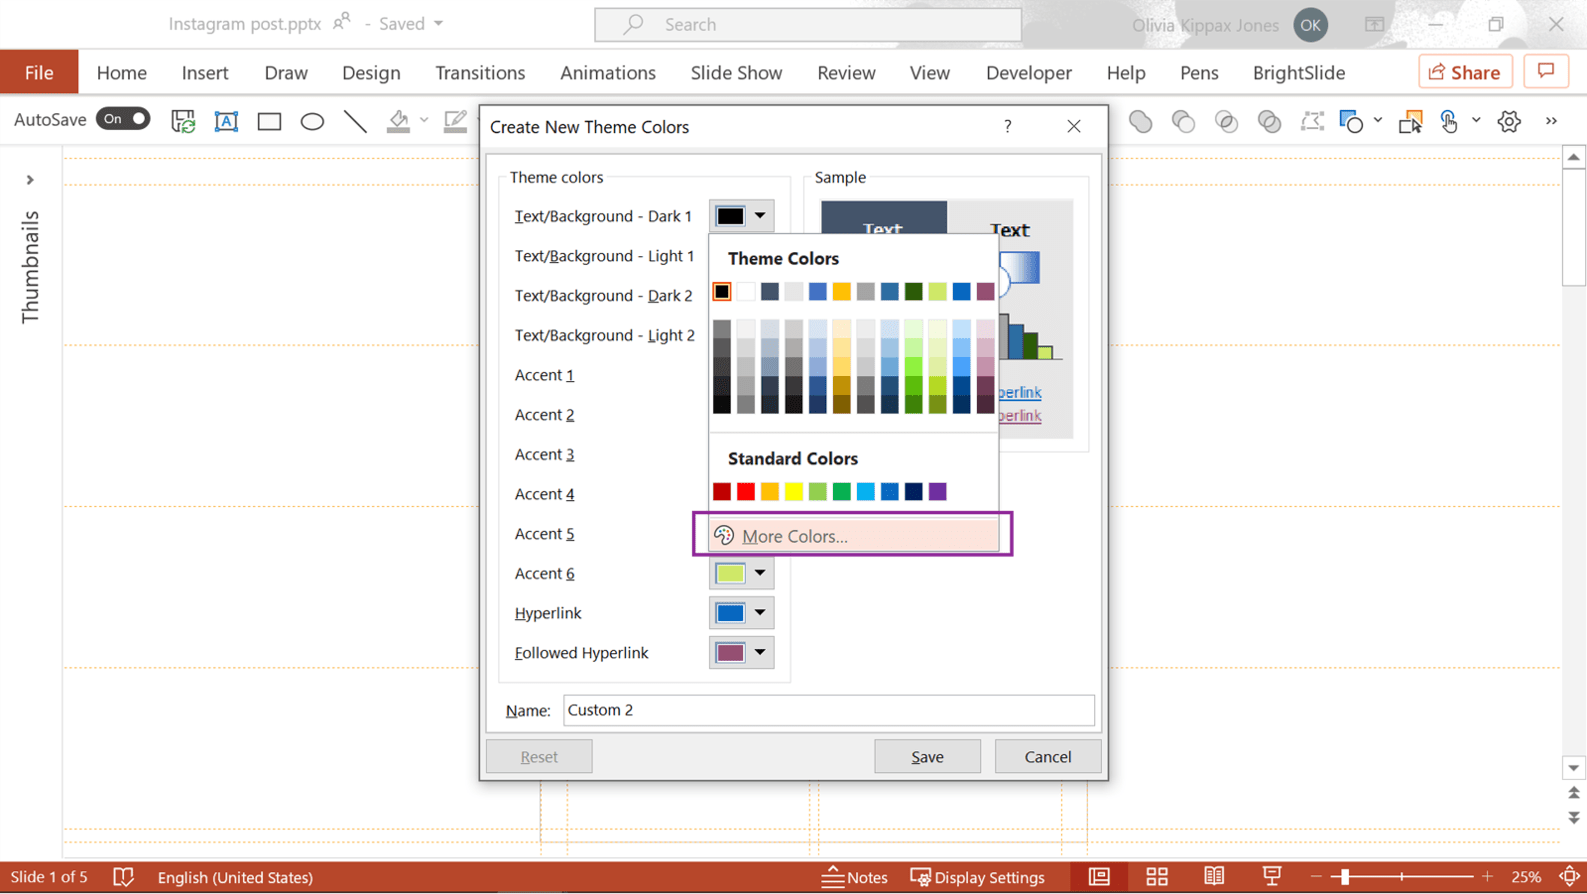 Screenshot of PowerPoint showing how to add custom colors to new theme.